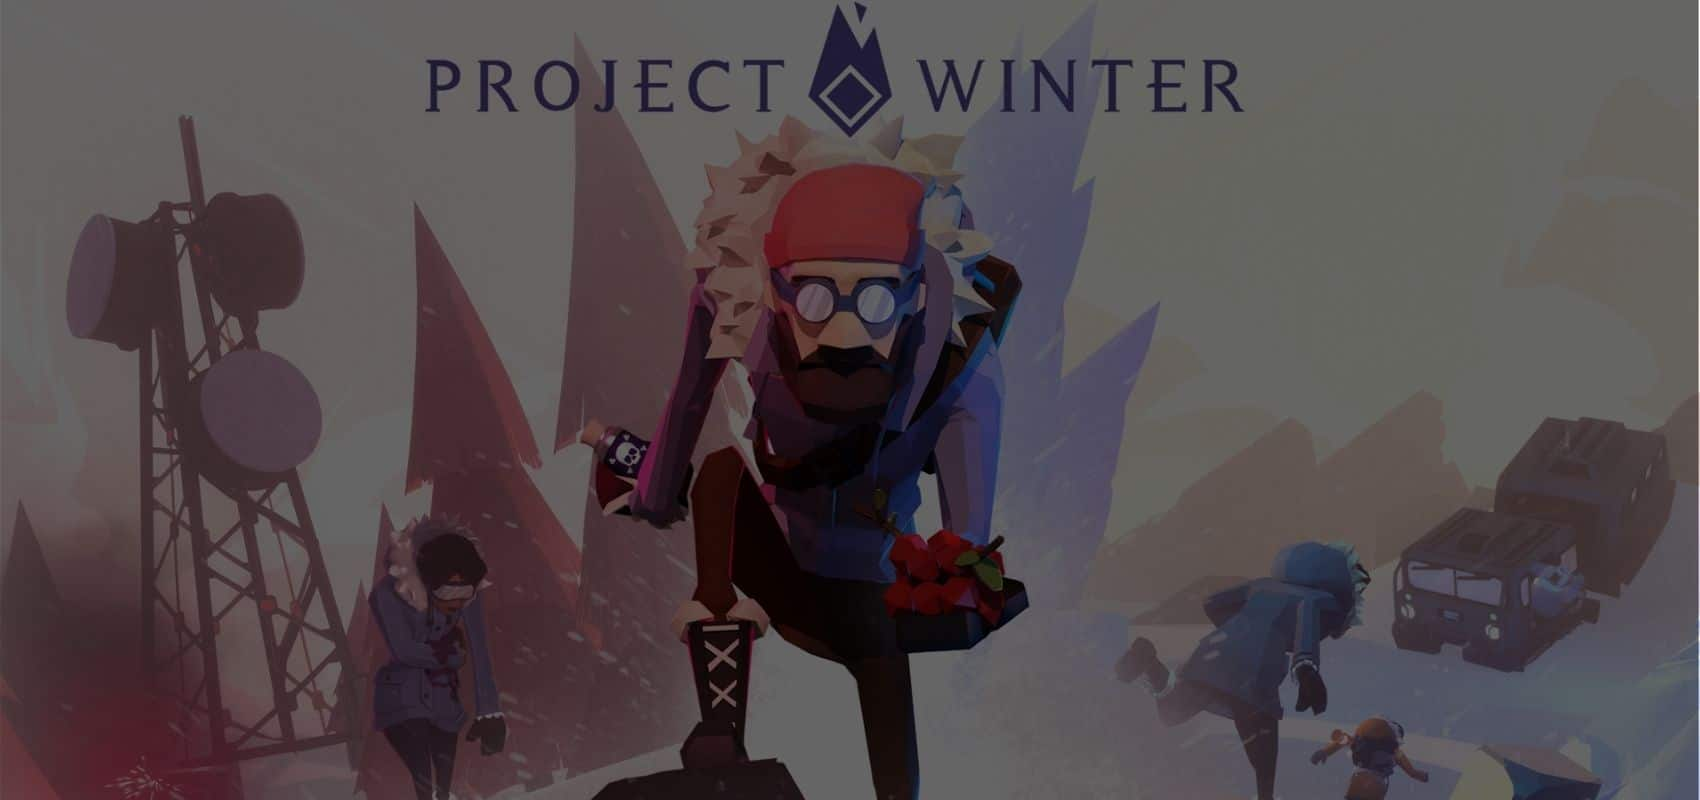 Project Winter comes in from the cold and announces its release on Xbox consoles and Windows 10